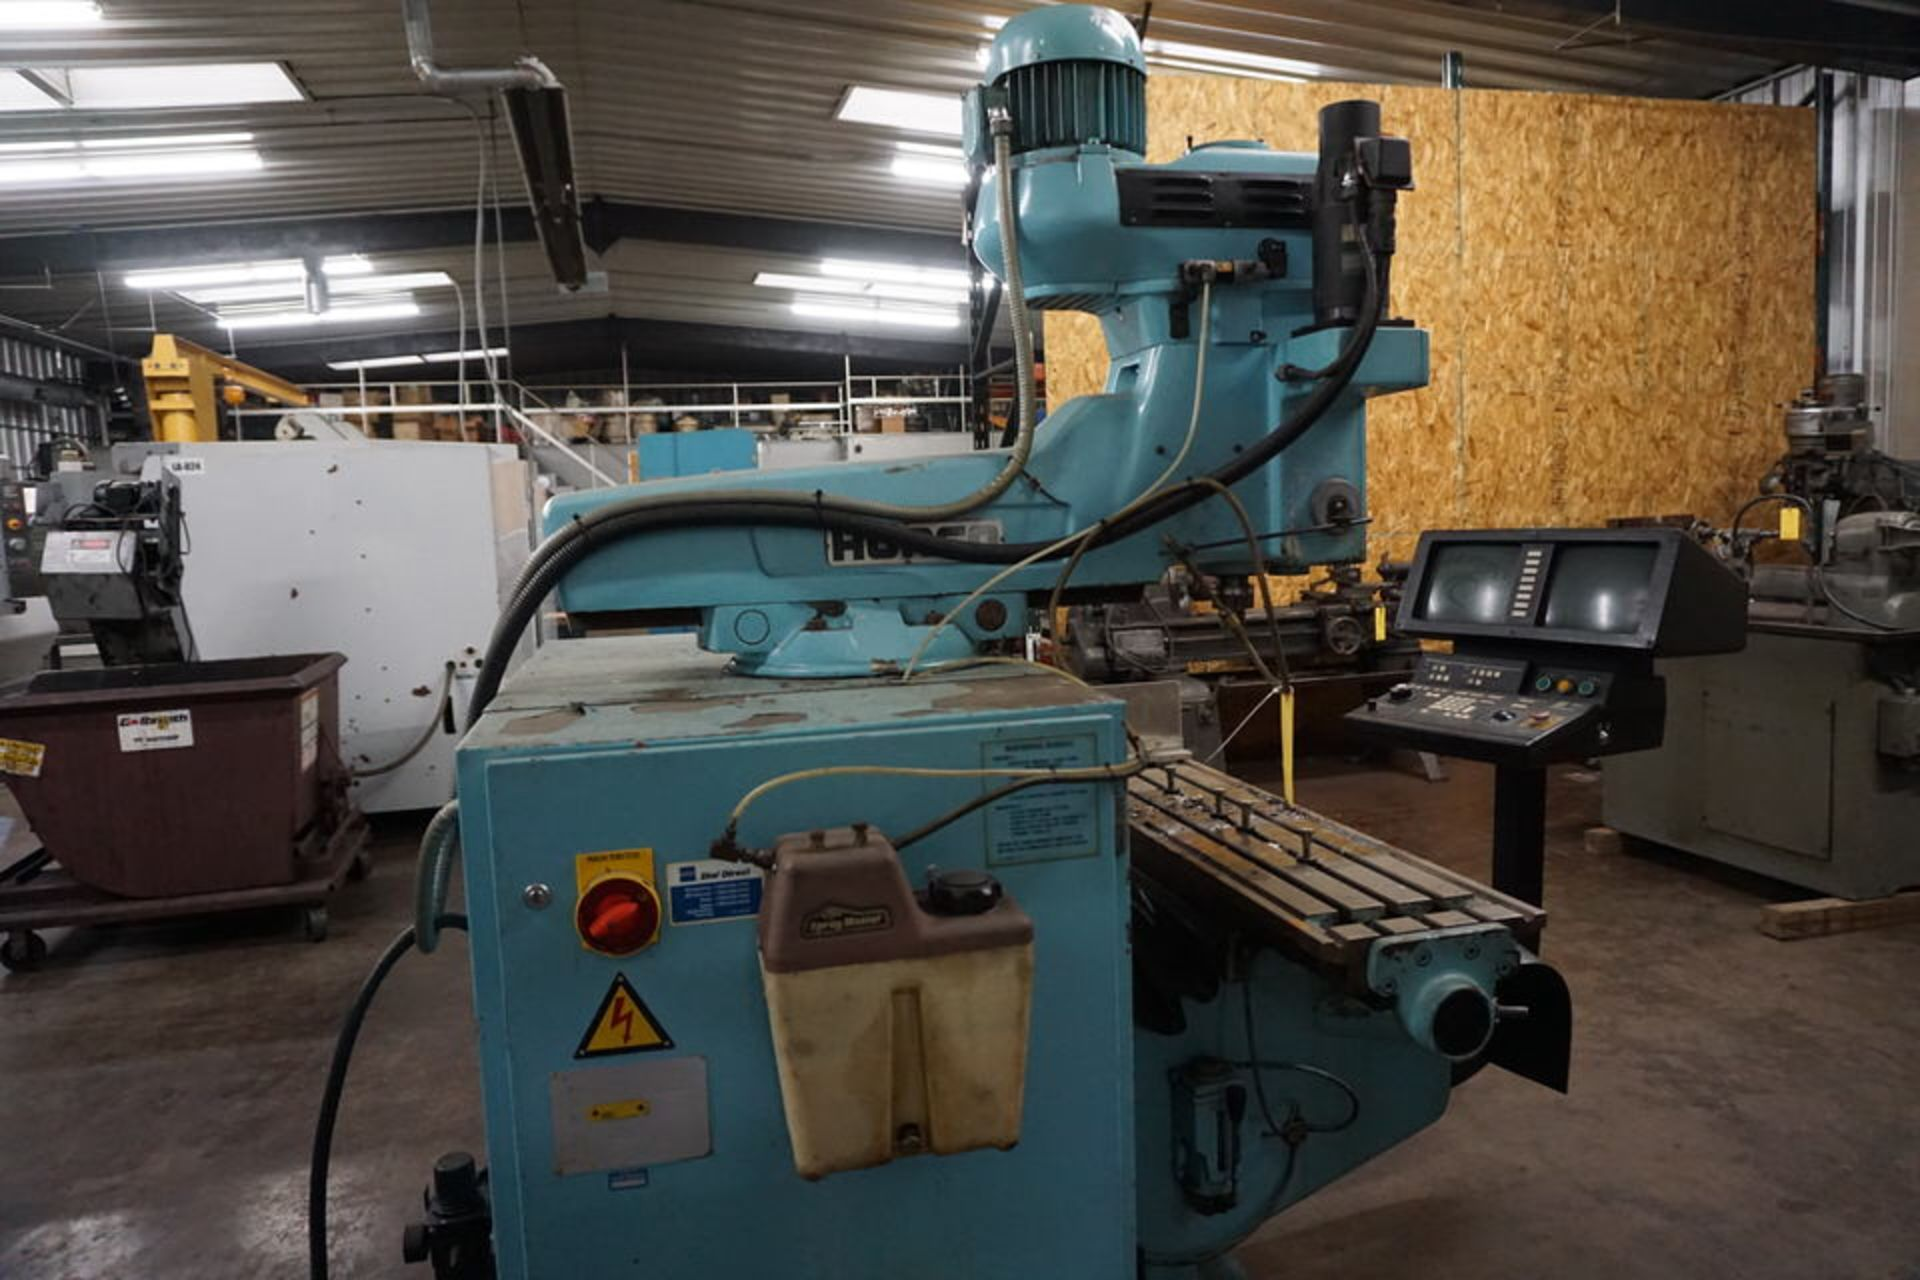 HURCO VERTICAL MILLING MACHINE W/ HURCO ULTIMAX KM-3 CONTROL - Image 3 of 6